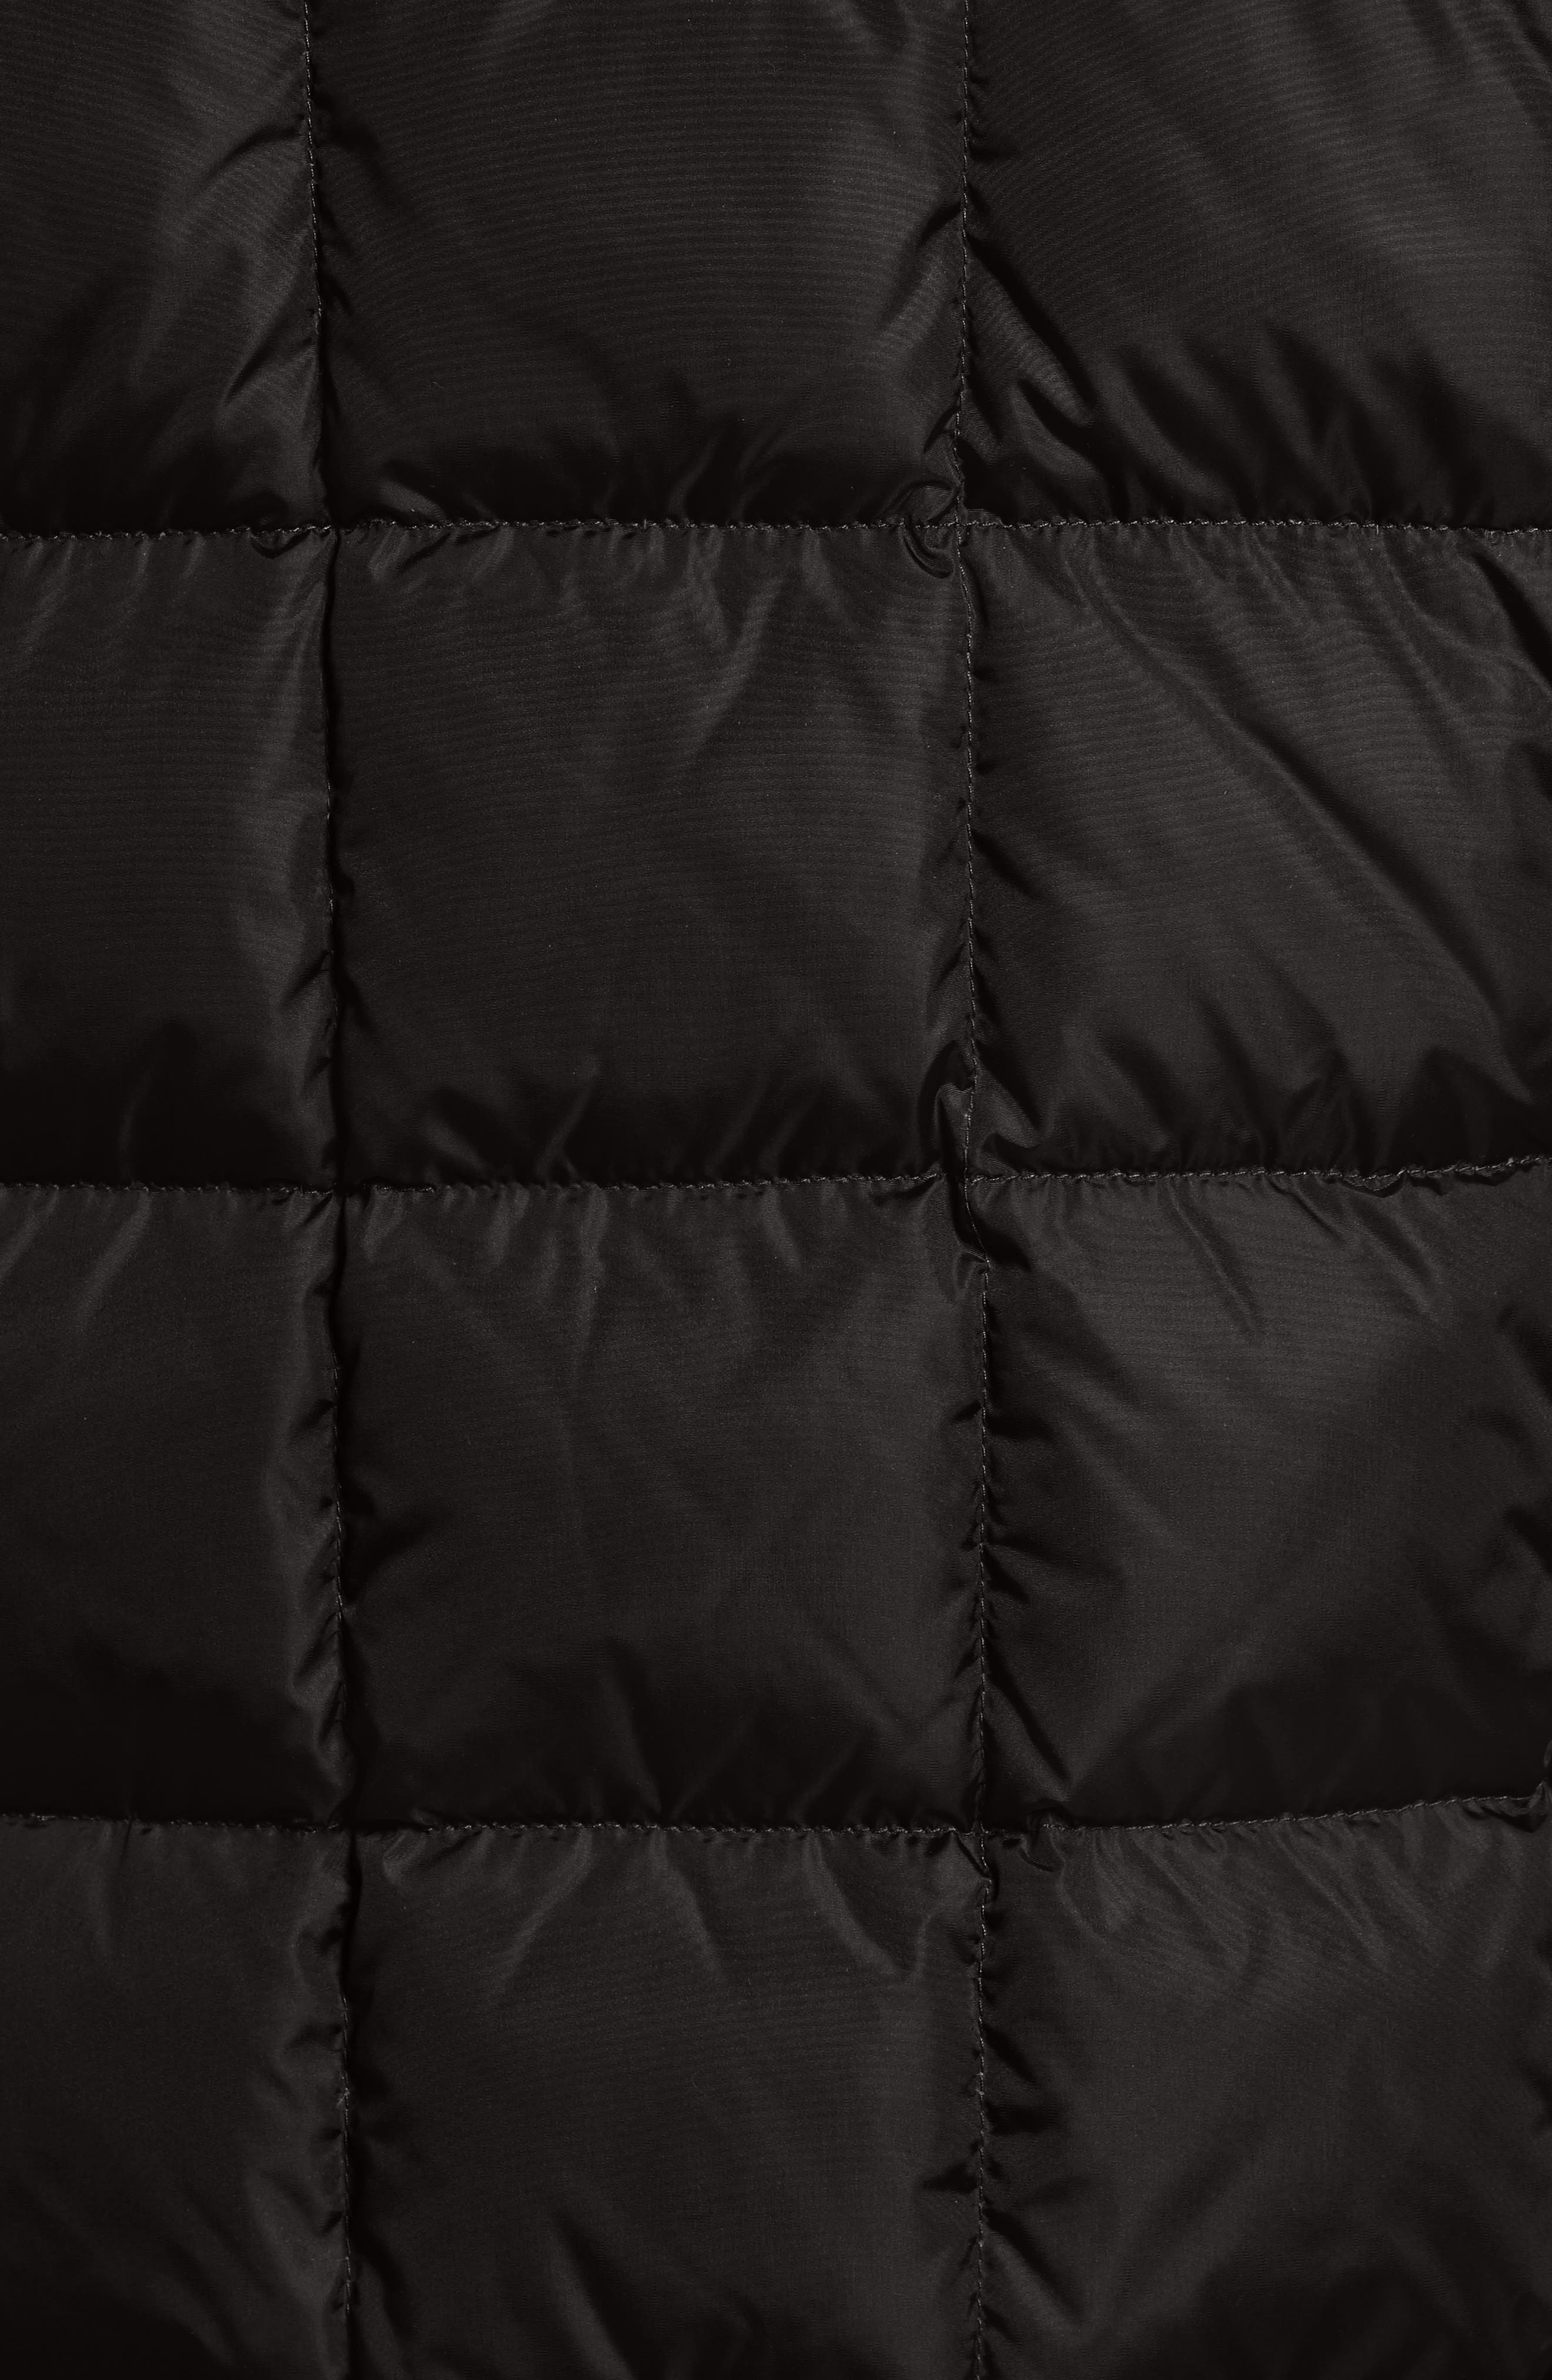 Clovis Mixed Media Quilted Down Jacket,                             Alternate thumbnail 5, color,                             001